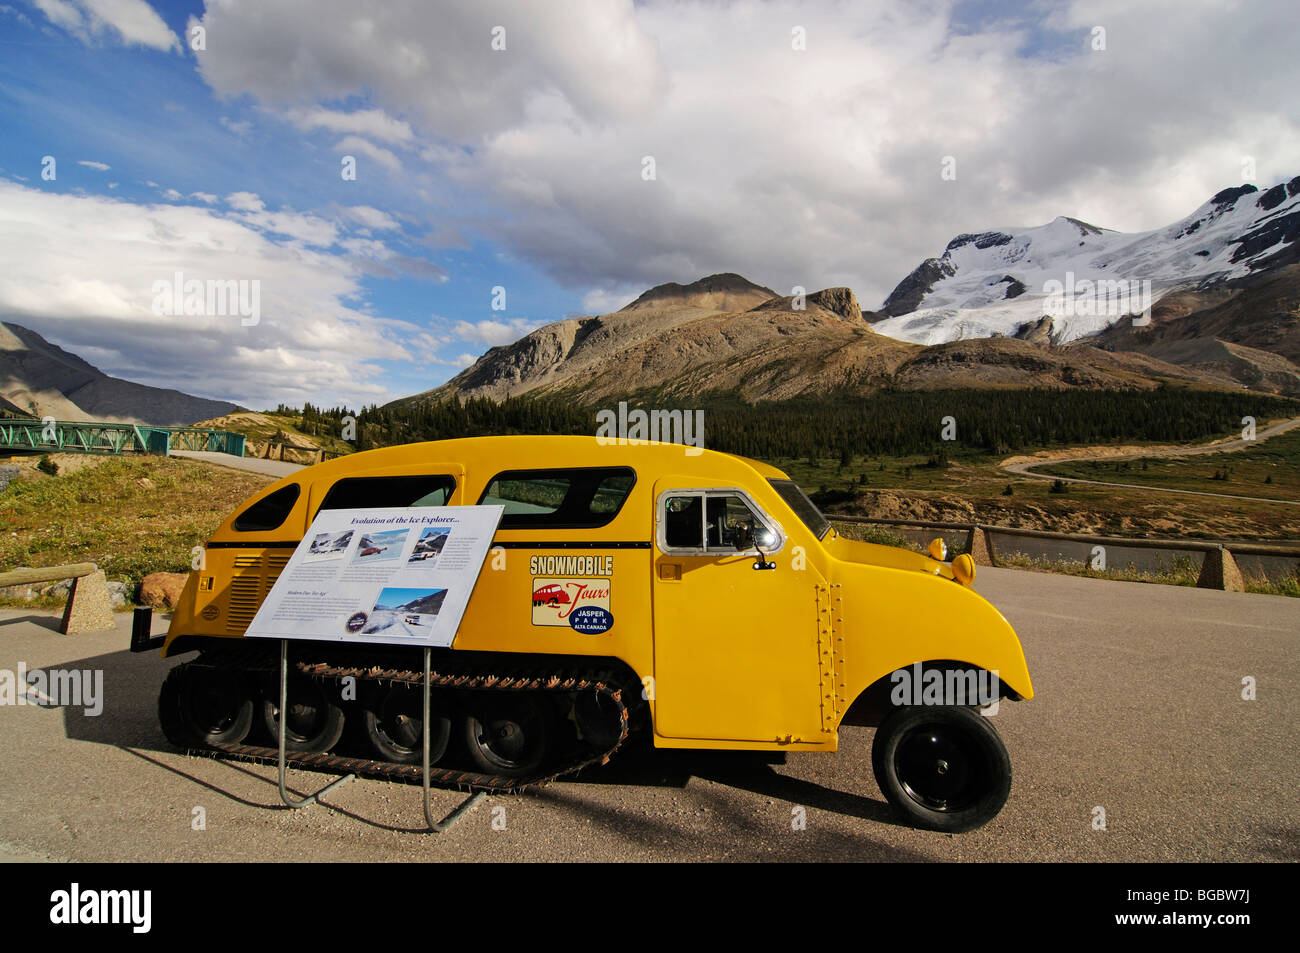 Old snowmobile, Icefields Parkway, Columbia Icefield, Jasper National Park, Alberta, Canada - Stock Image